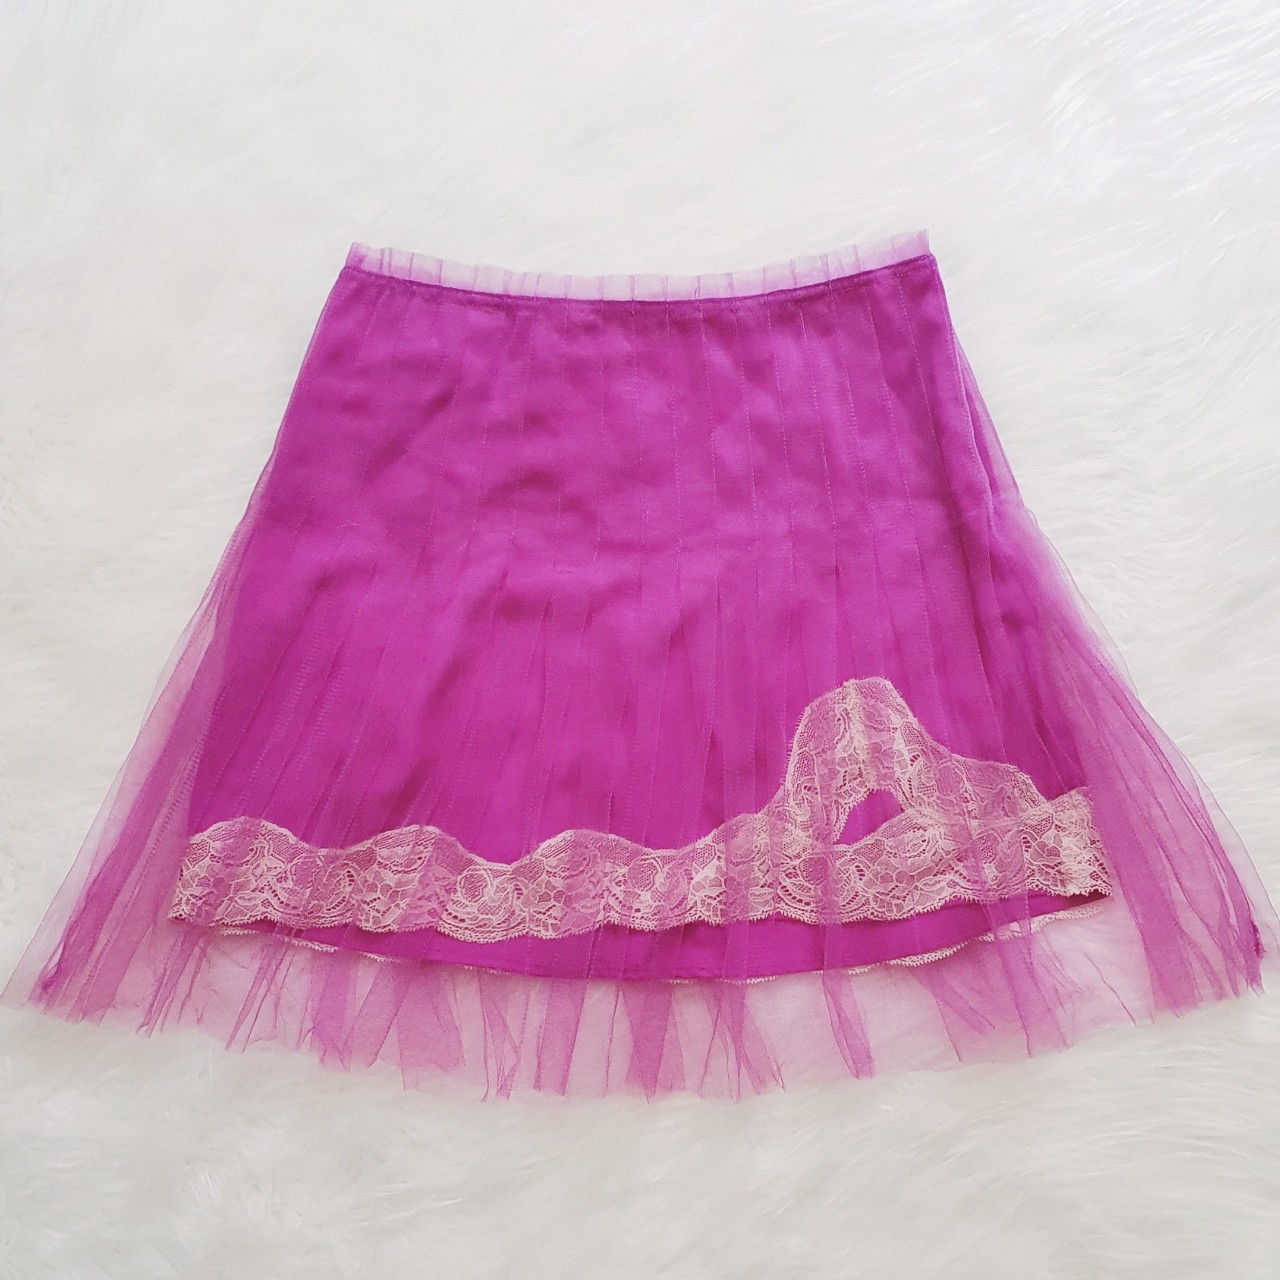 Product Image 1 - Rodarte for Target orchid pink